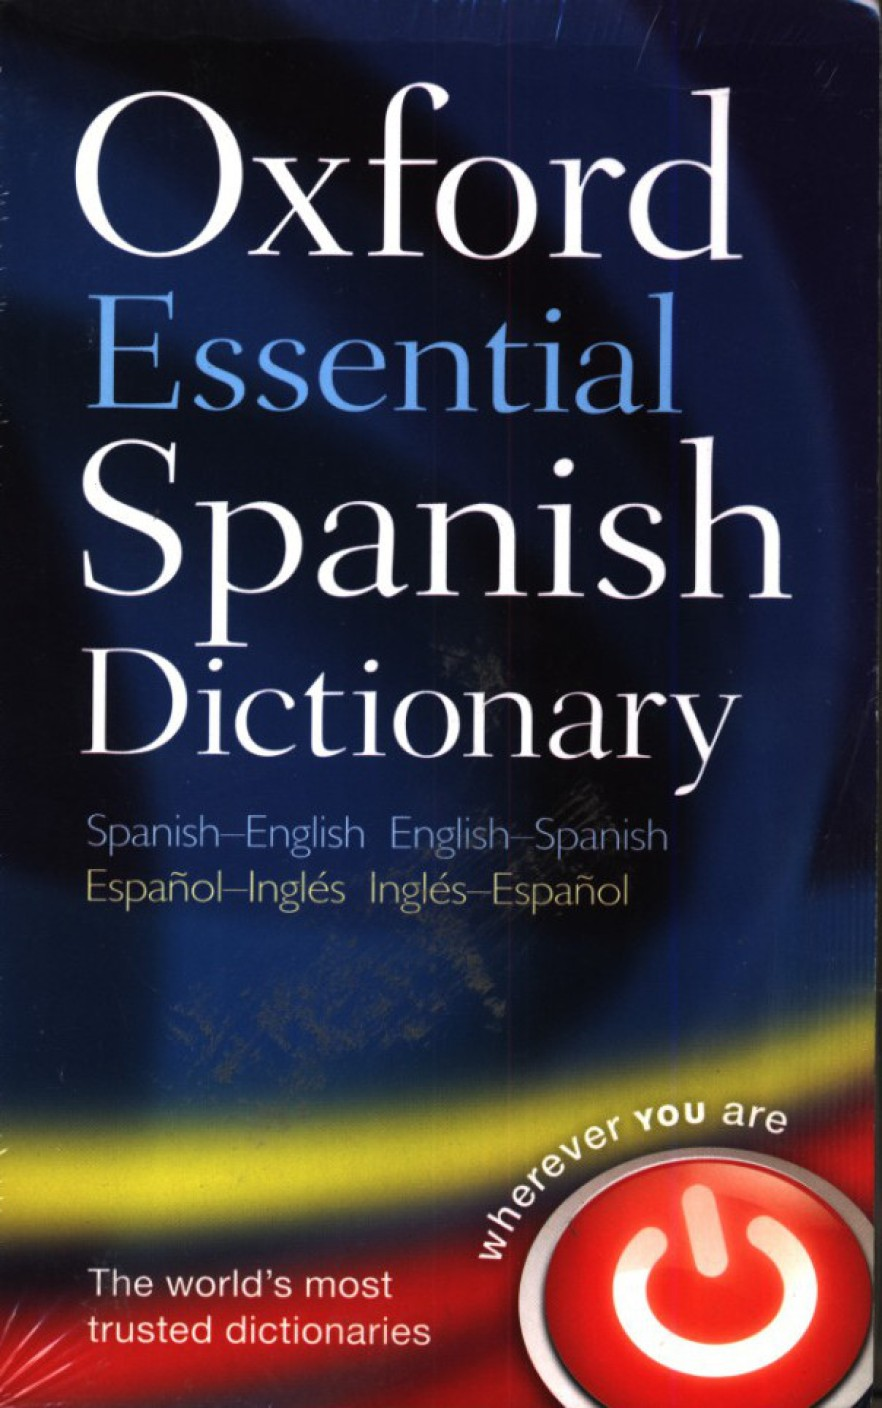 Oxford essential spanish dictionary 1st edition add to cart